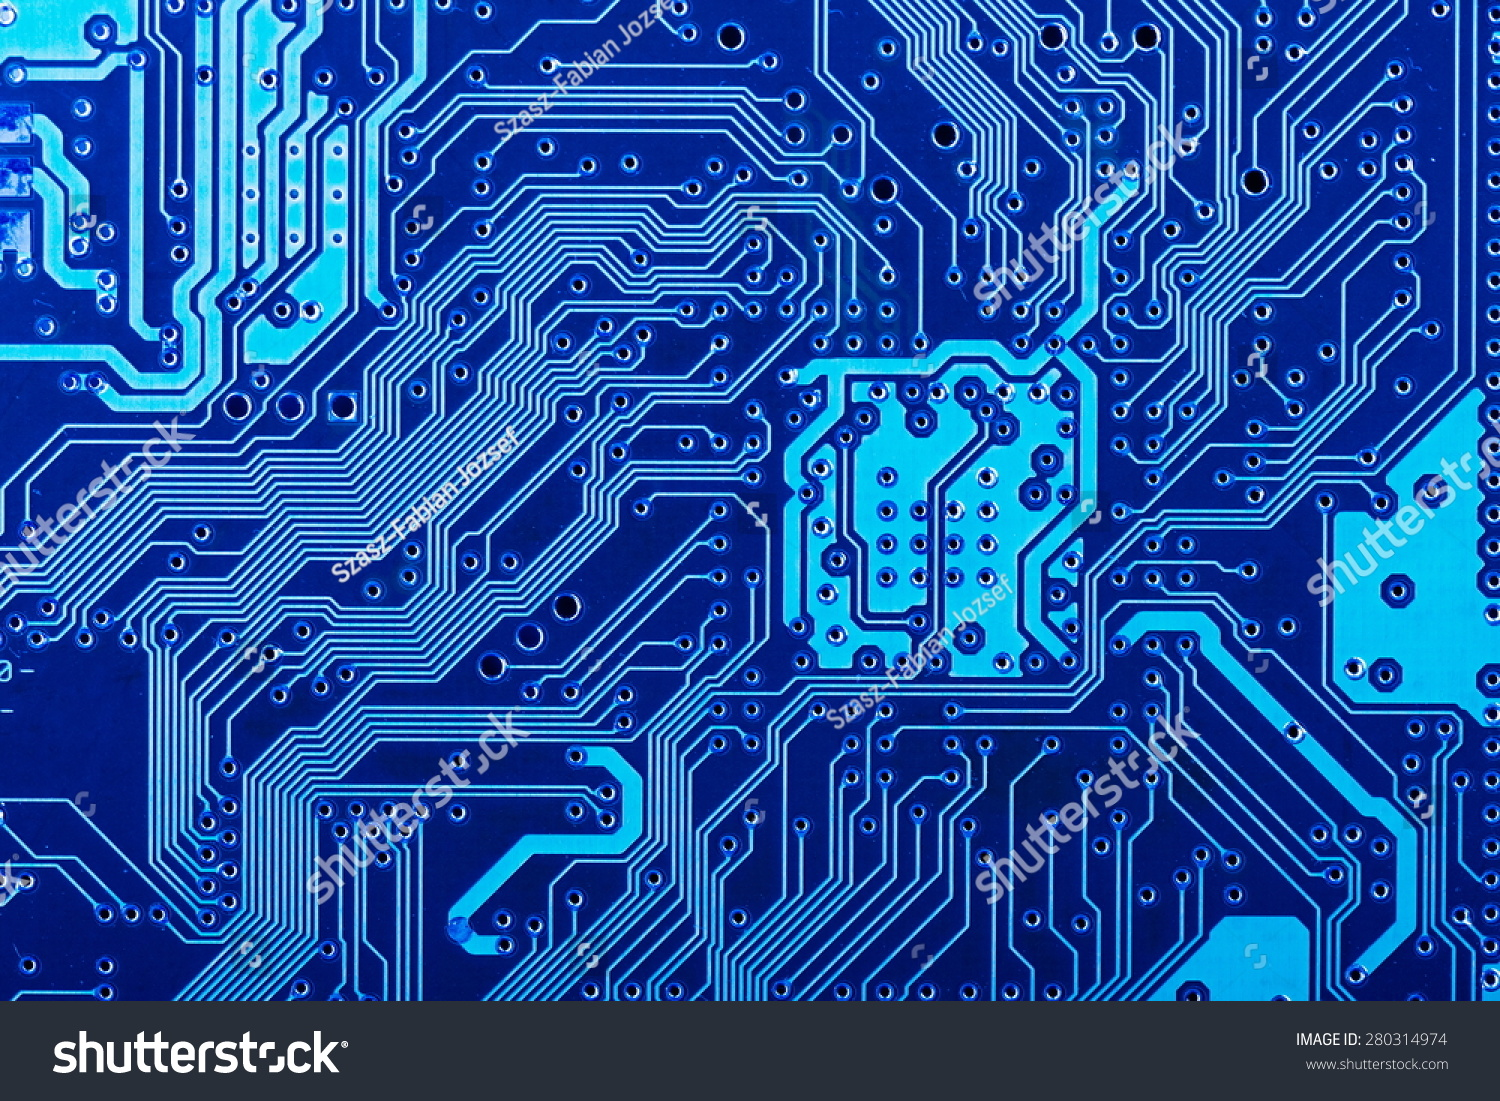 Royalty Free Solder Side Of Electronic Printed 280314974 Stock Circuit Board Photography Photo